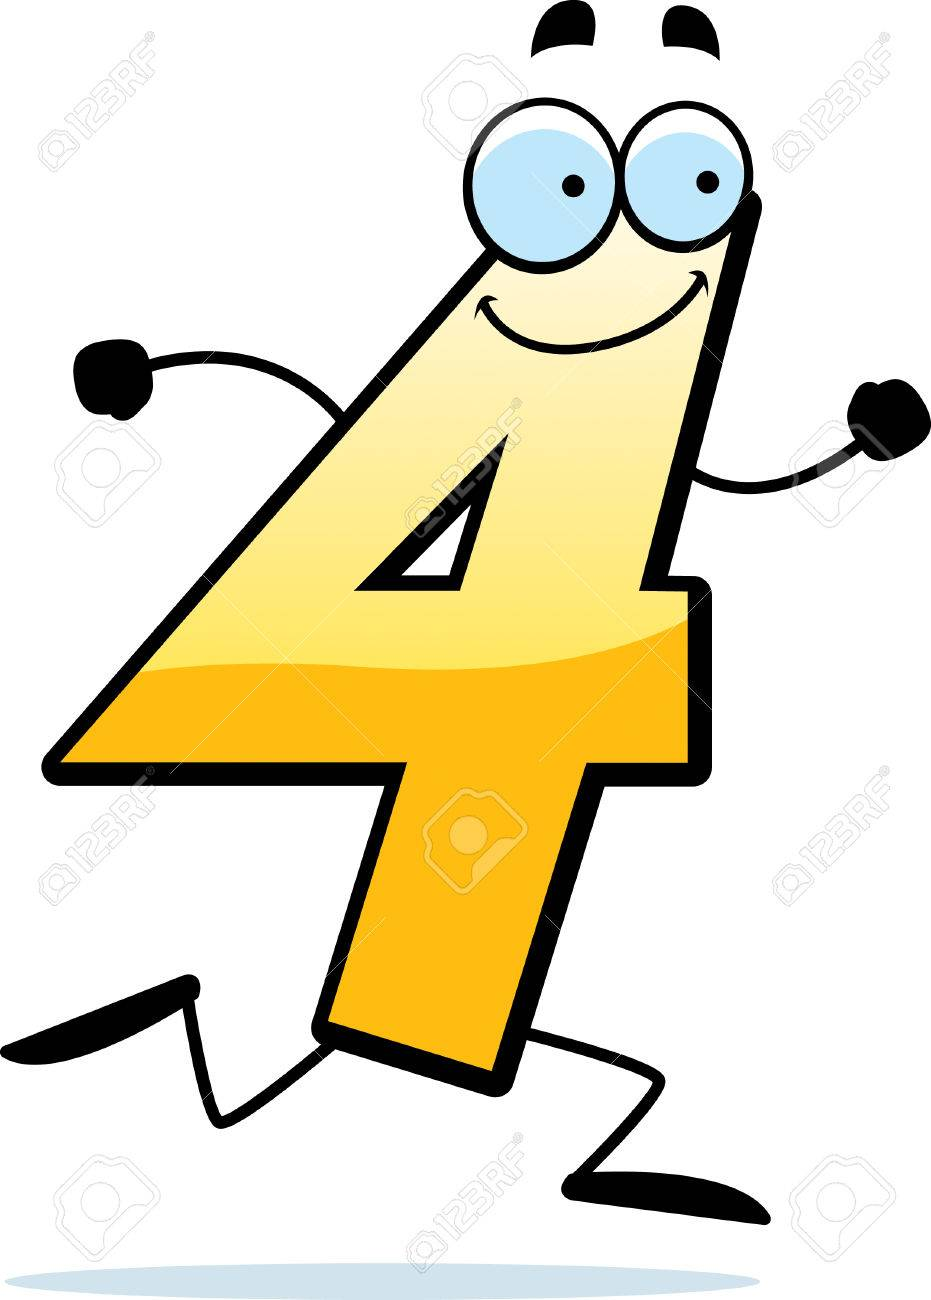 931x1300 A Cartoon Illustration Of A Number Four Running And Smiling